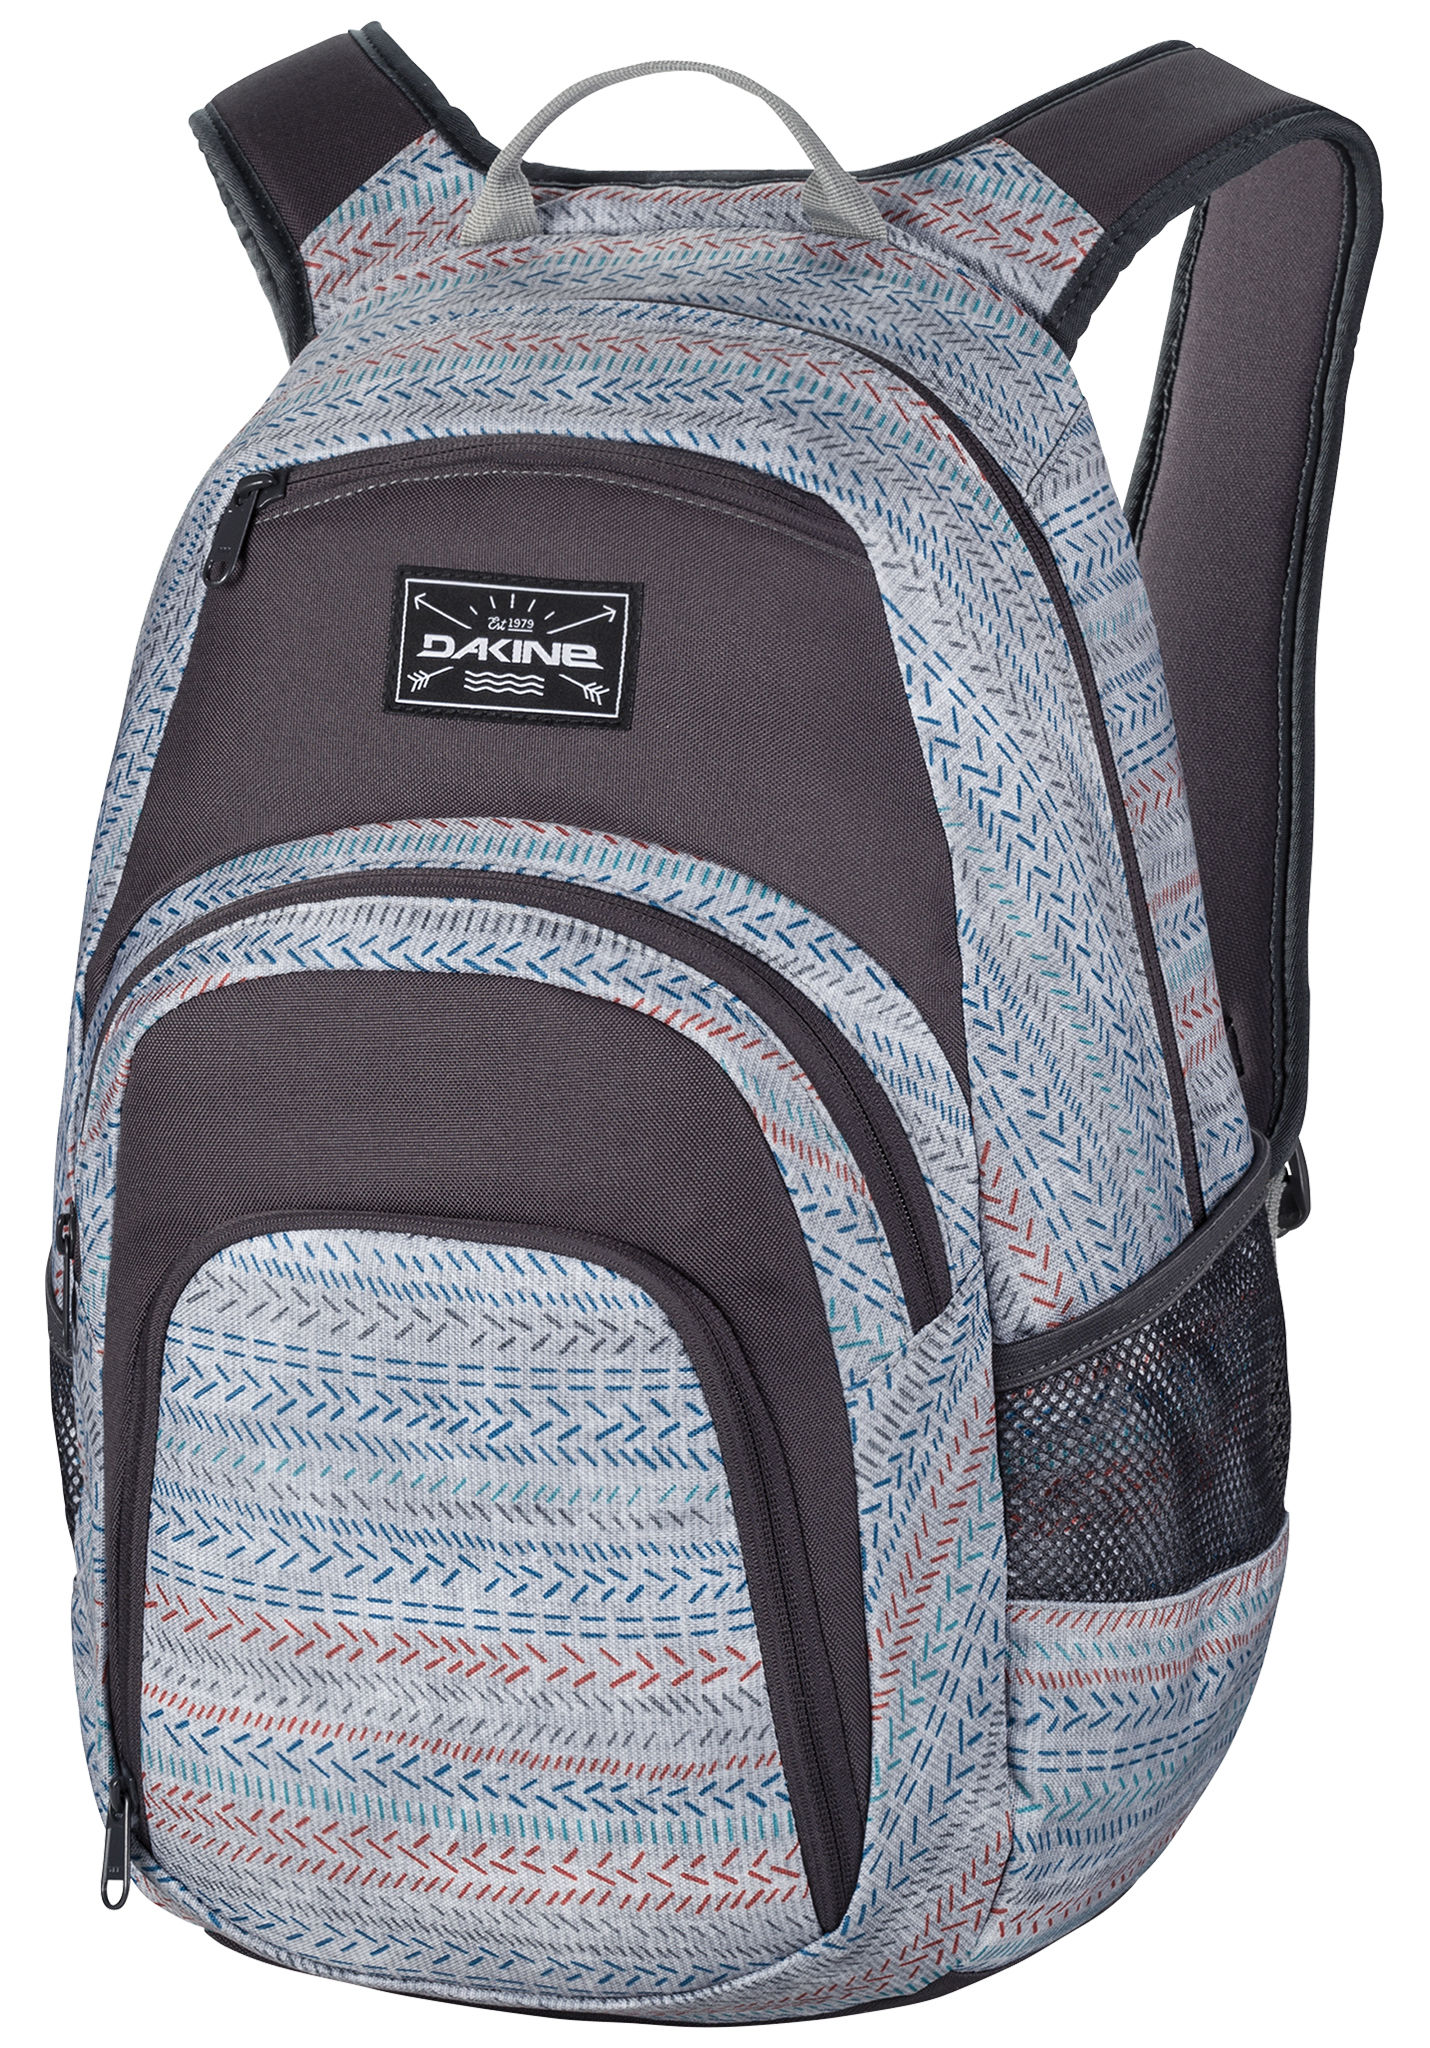 af2a04a18e355 Dakine Campus 25L - Backpack for Men - Multicolor - Planet Sports